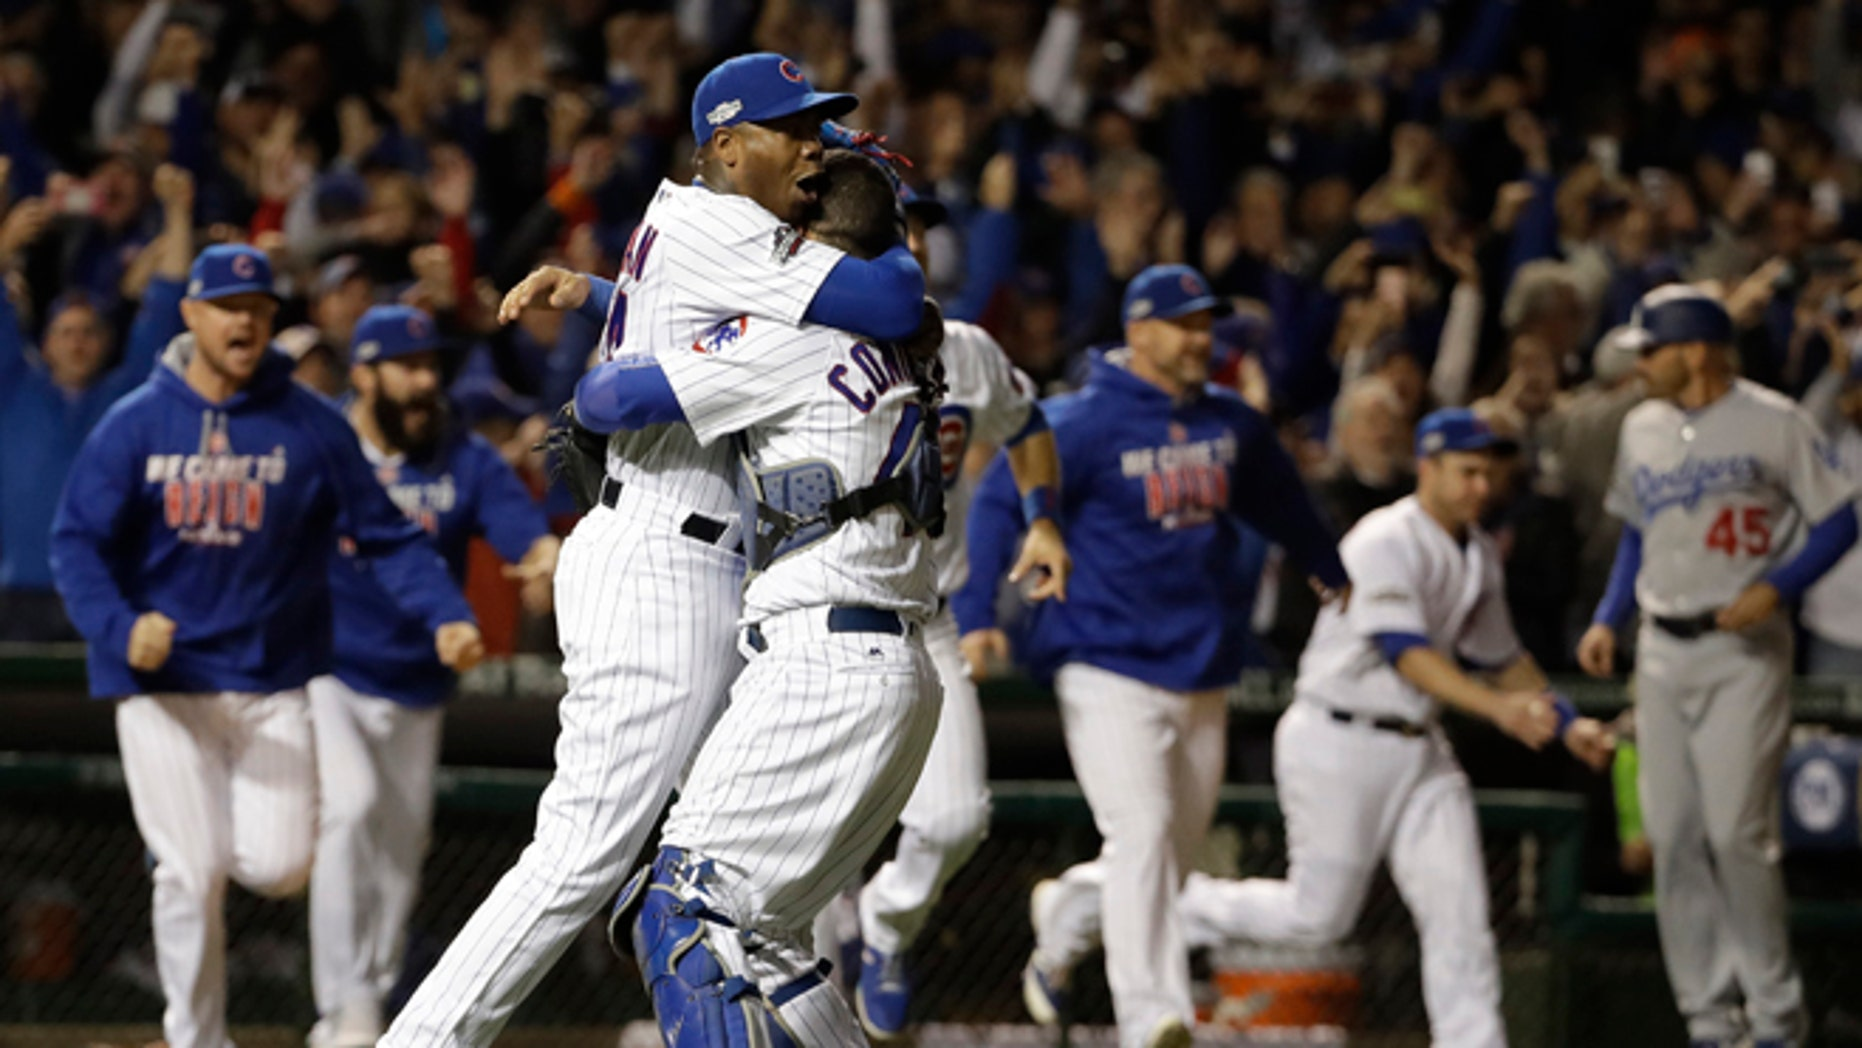 Chicago Cubs catcher Willson Contreras and relief pitcher Aroldis Chapman (54) celebrate after Game 6 of the National League baseball championship series against the Los Angeles Dodgers Saturday, Oct. 22, 2016, in Chicago. The Cubs won 5-0 to win the series and advance to the World Series against the Cleveland Indians. (AP Photo/David J. Phillip)